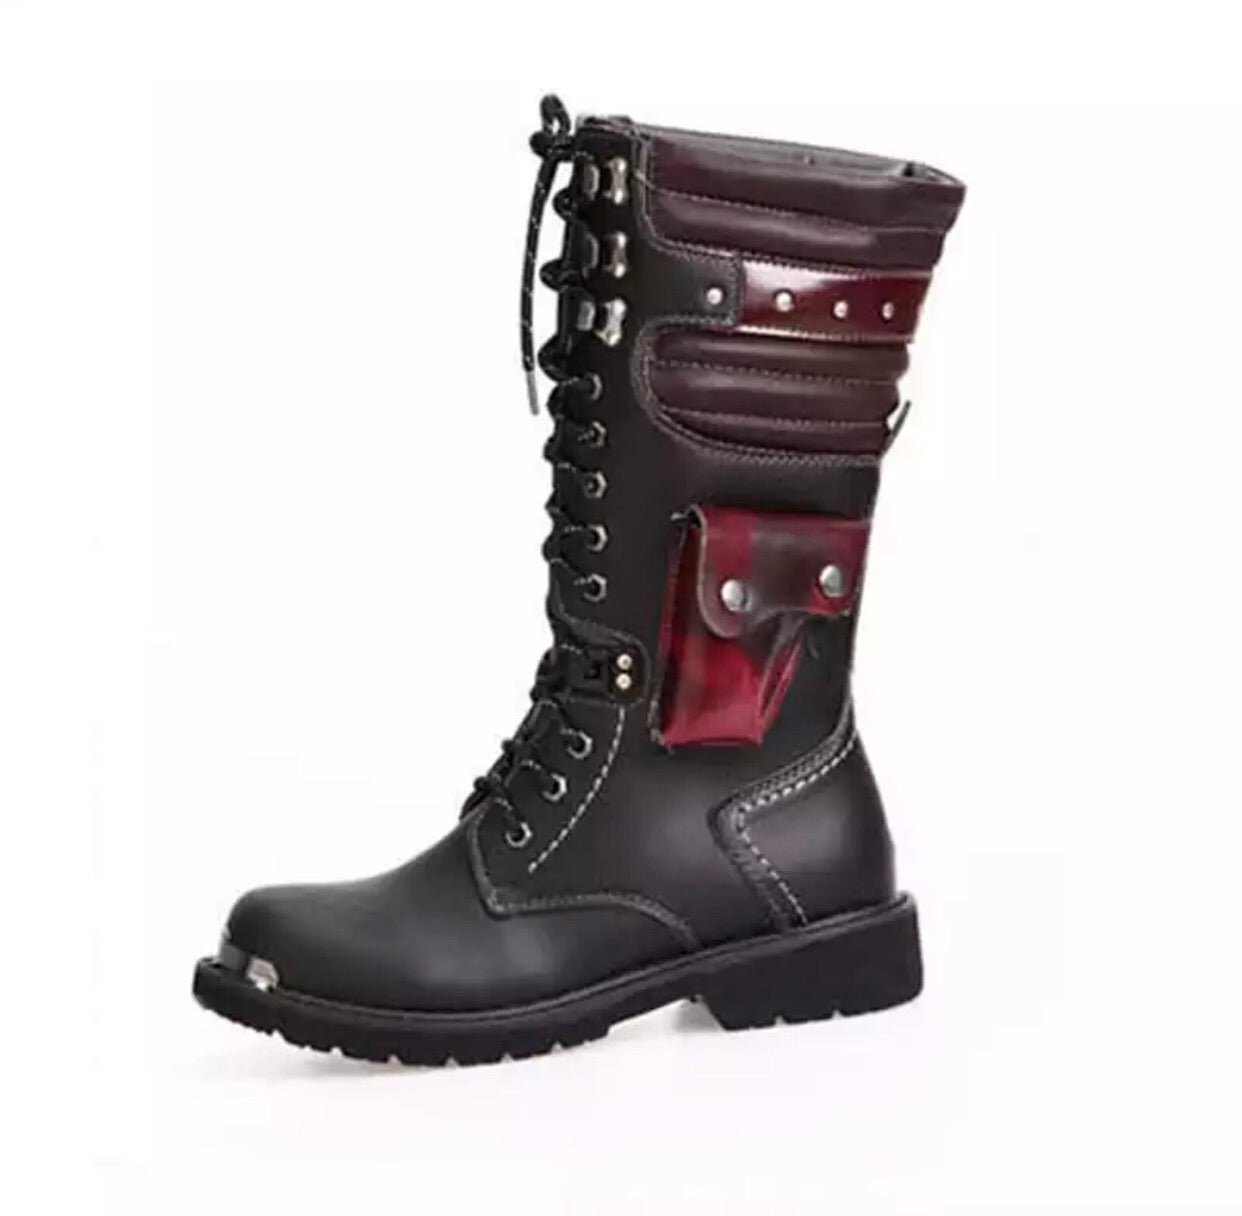 Lace up high combat boots -  Ashe Raven